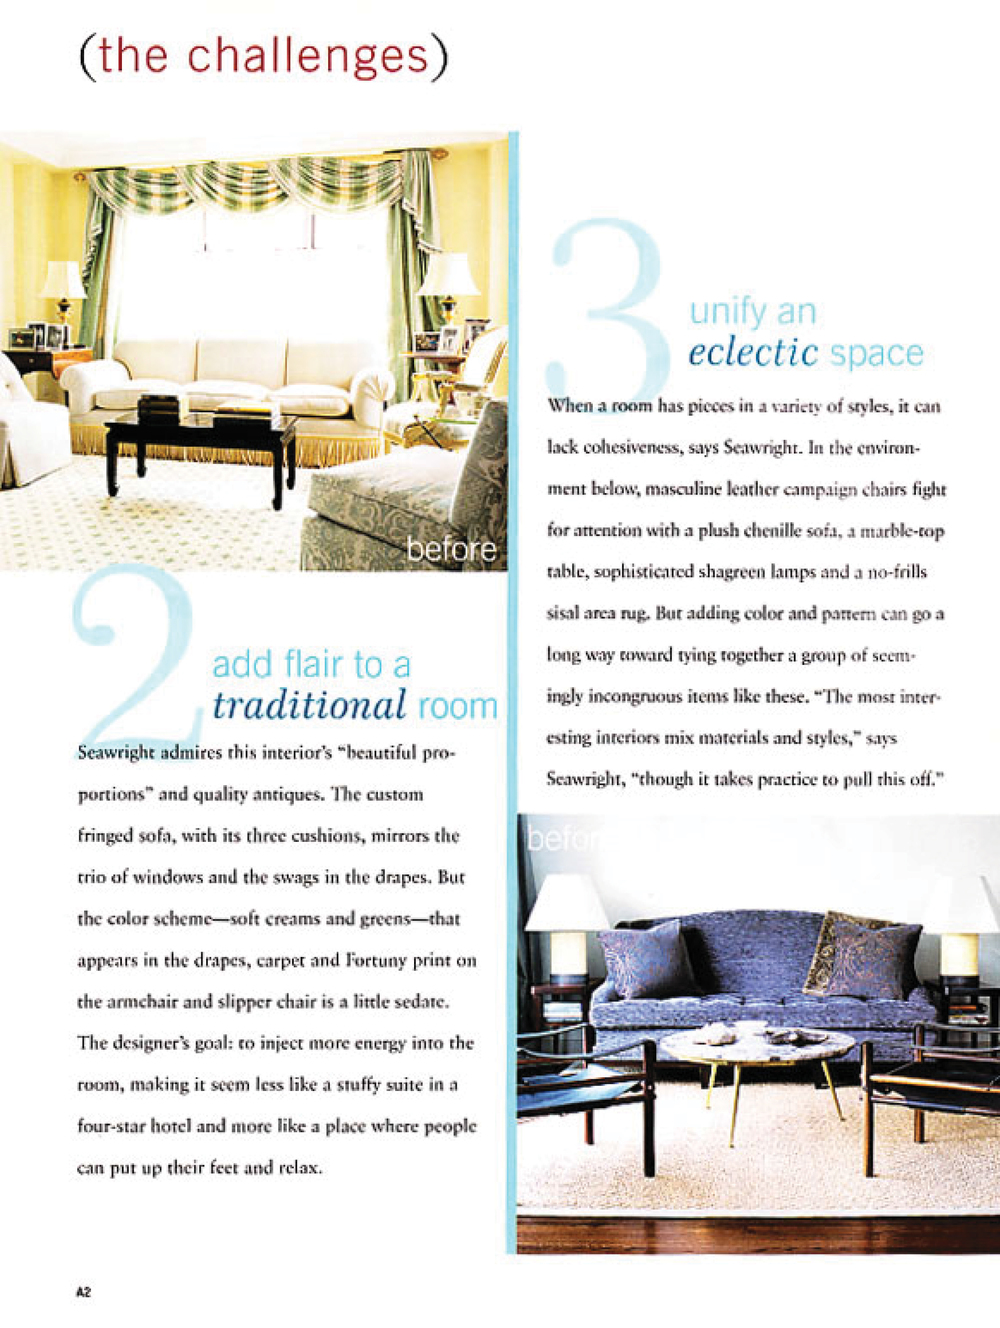 In_Style_Home_2005_Article 3.jpg